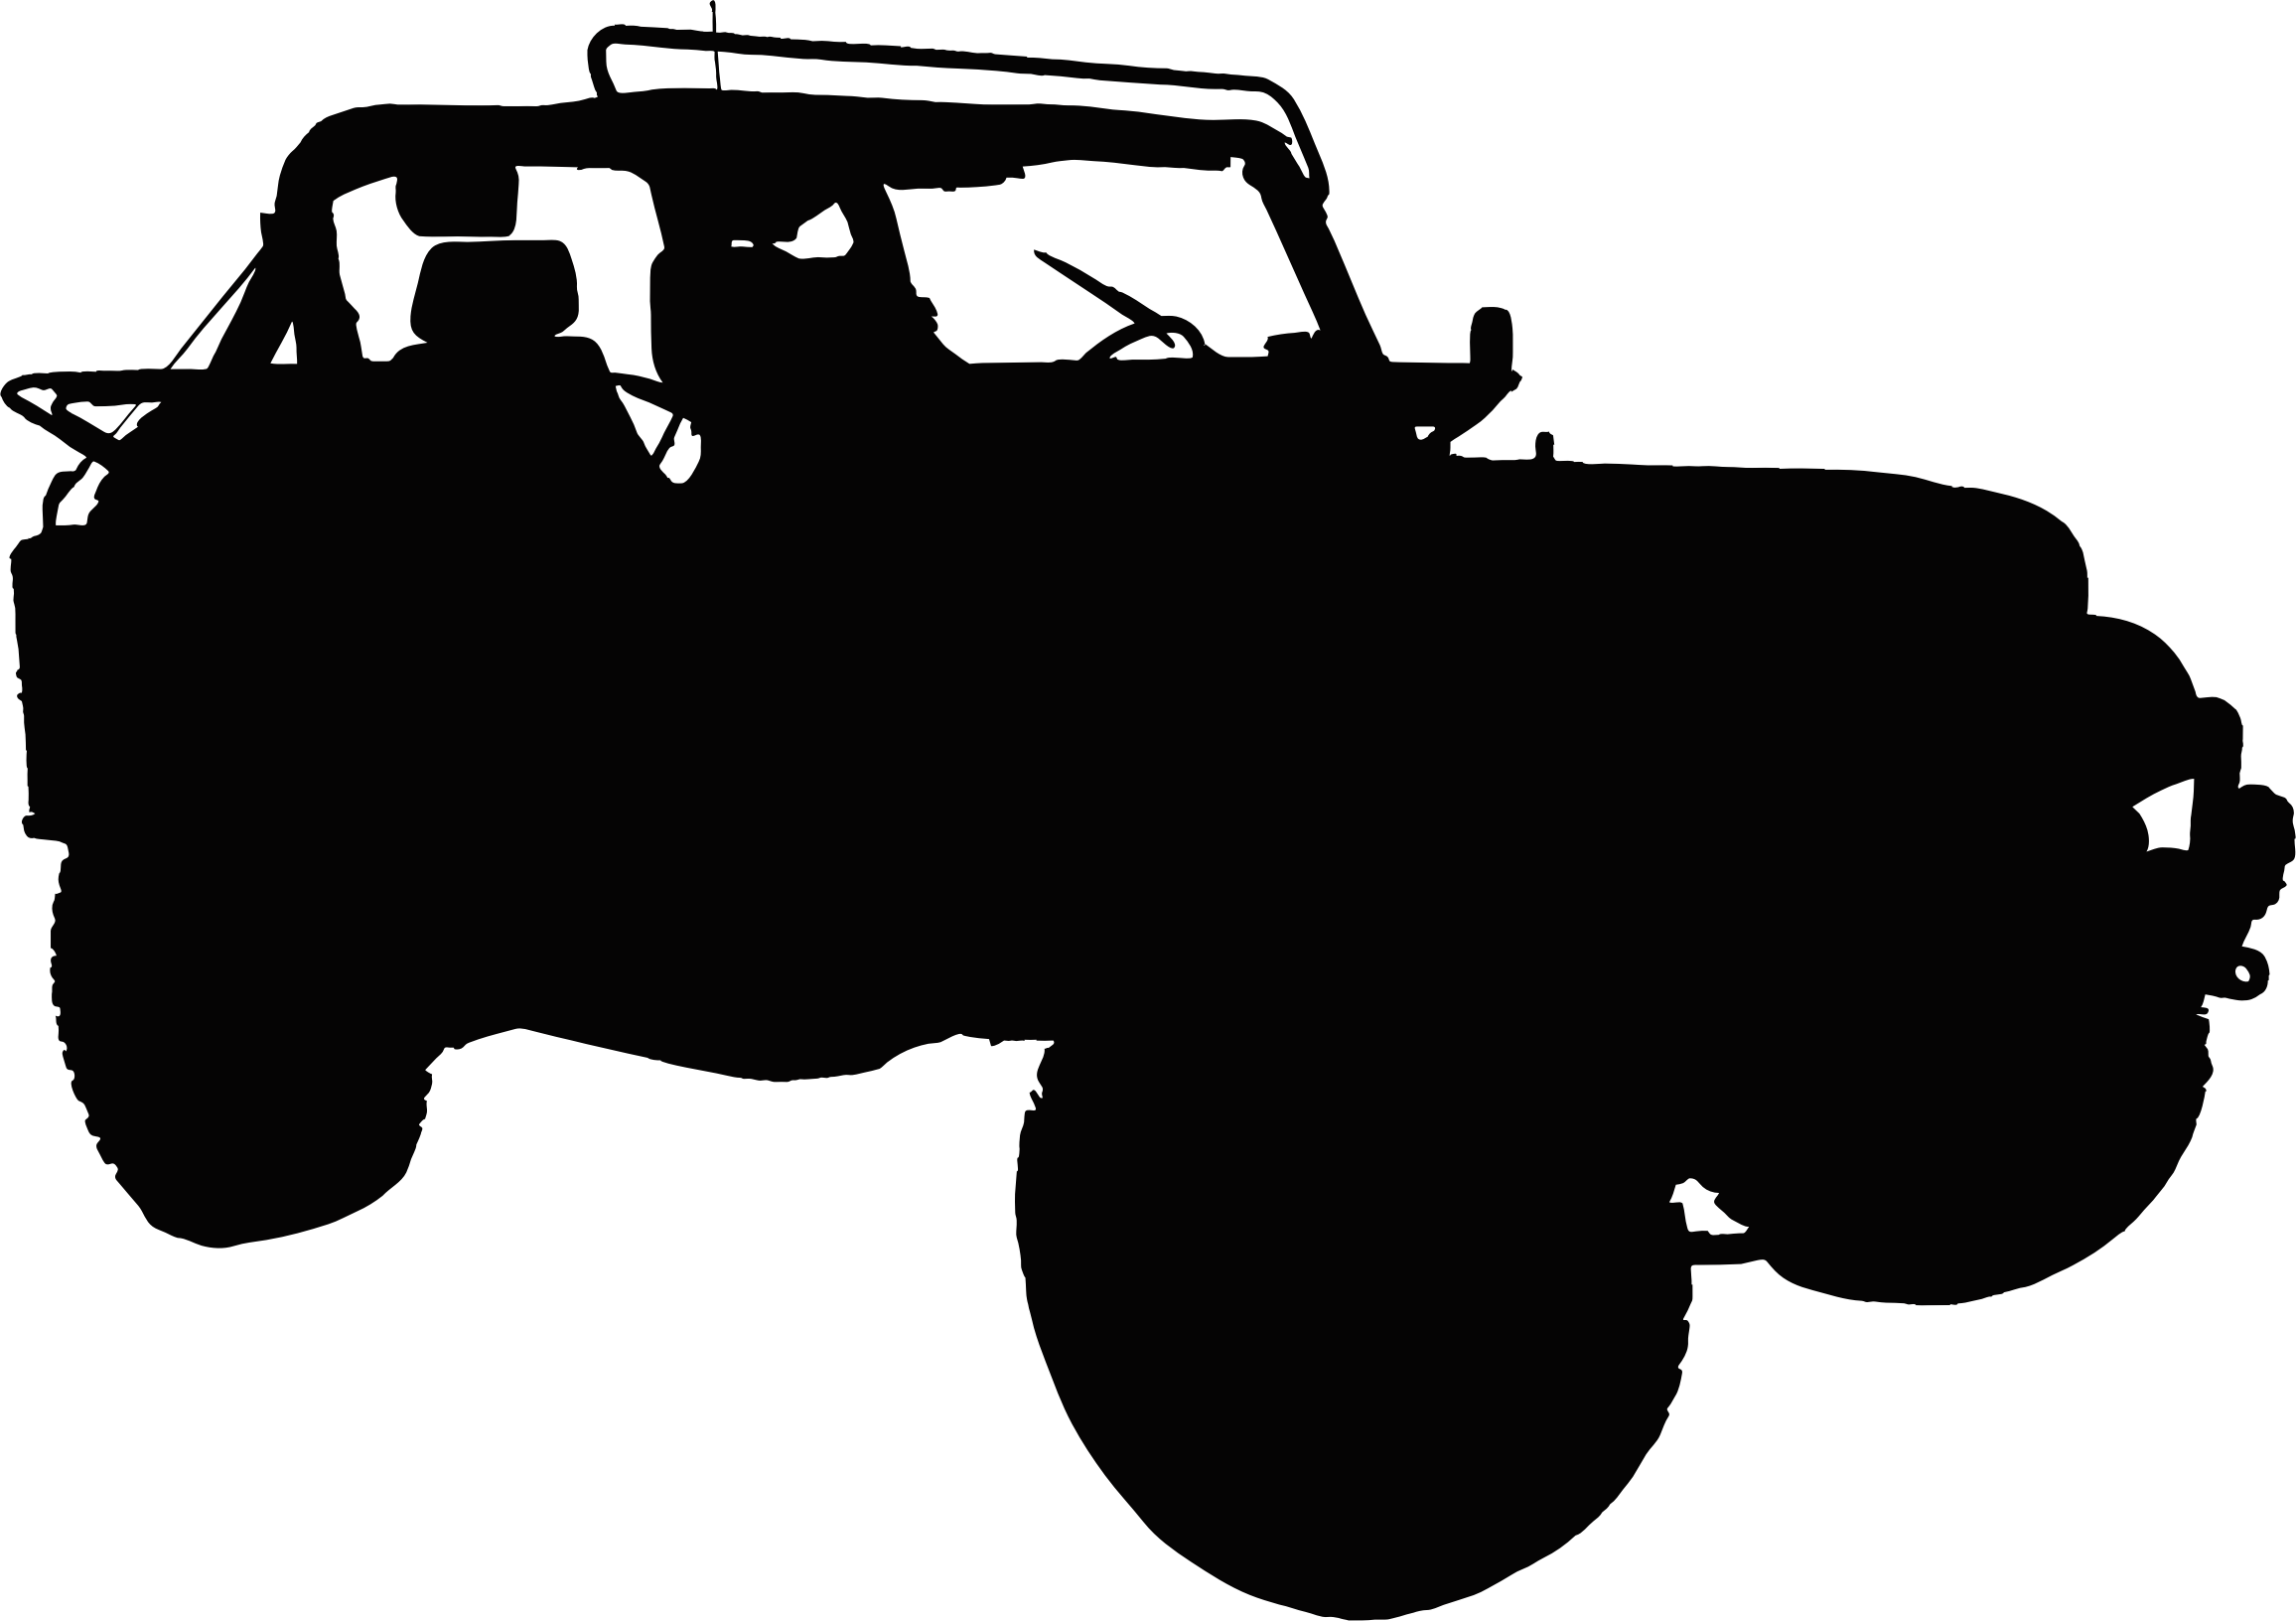 Silhouette icons free and. Jeep silouette png banner black and white download